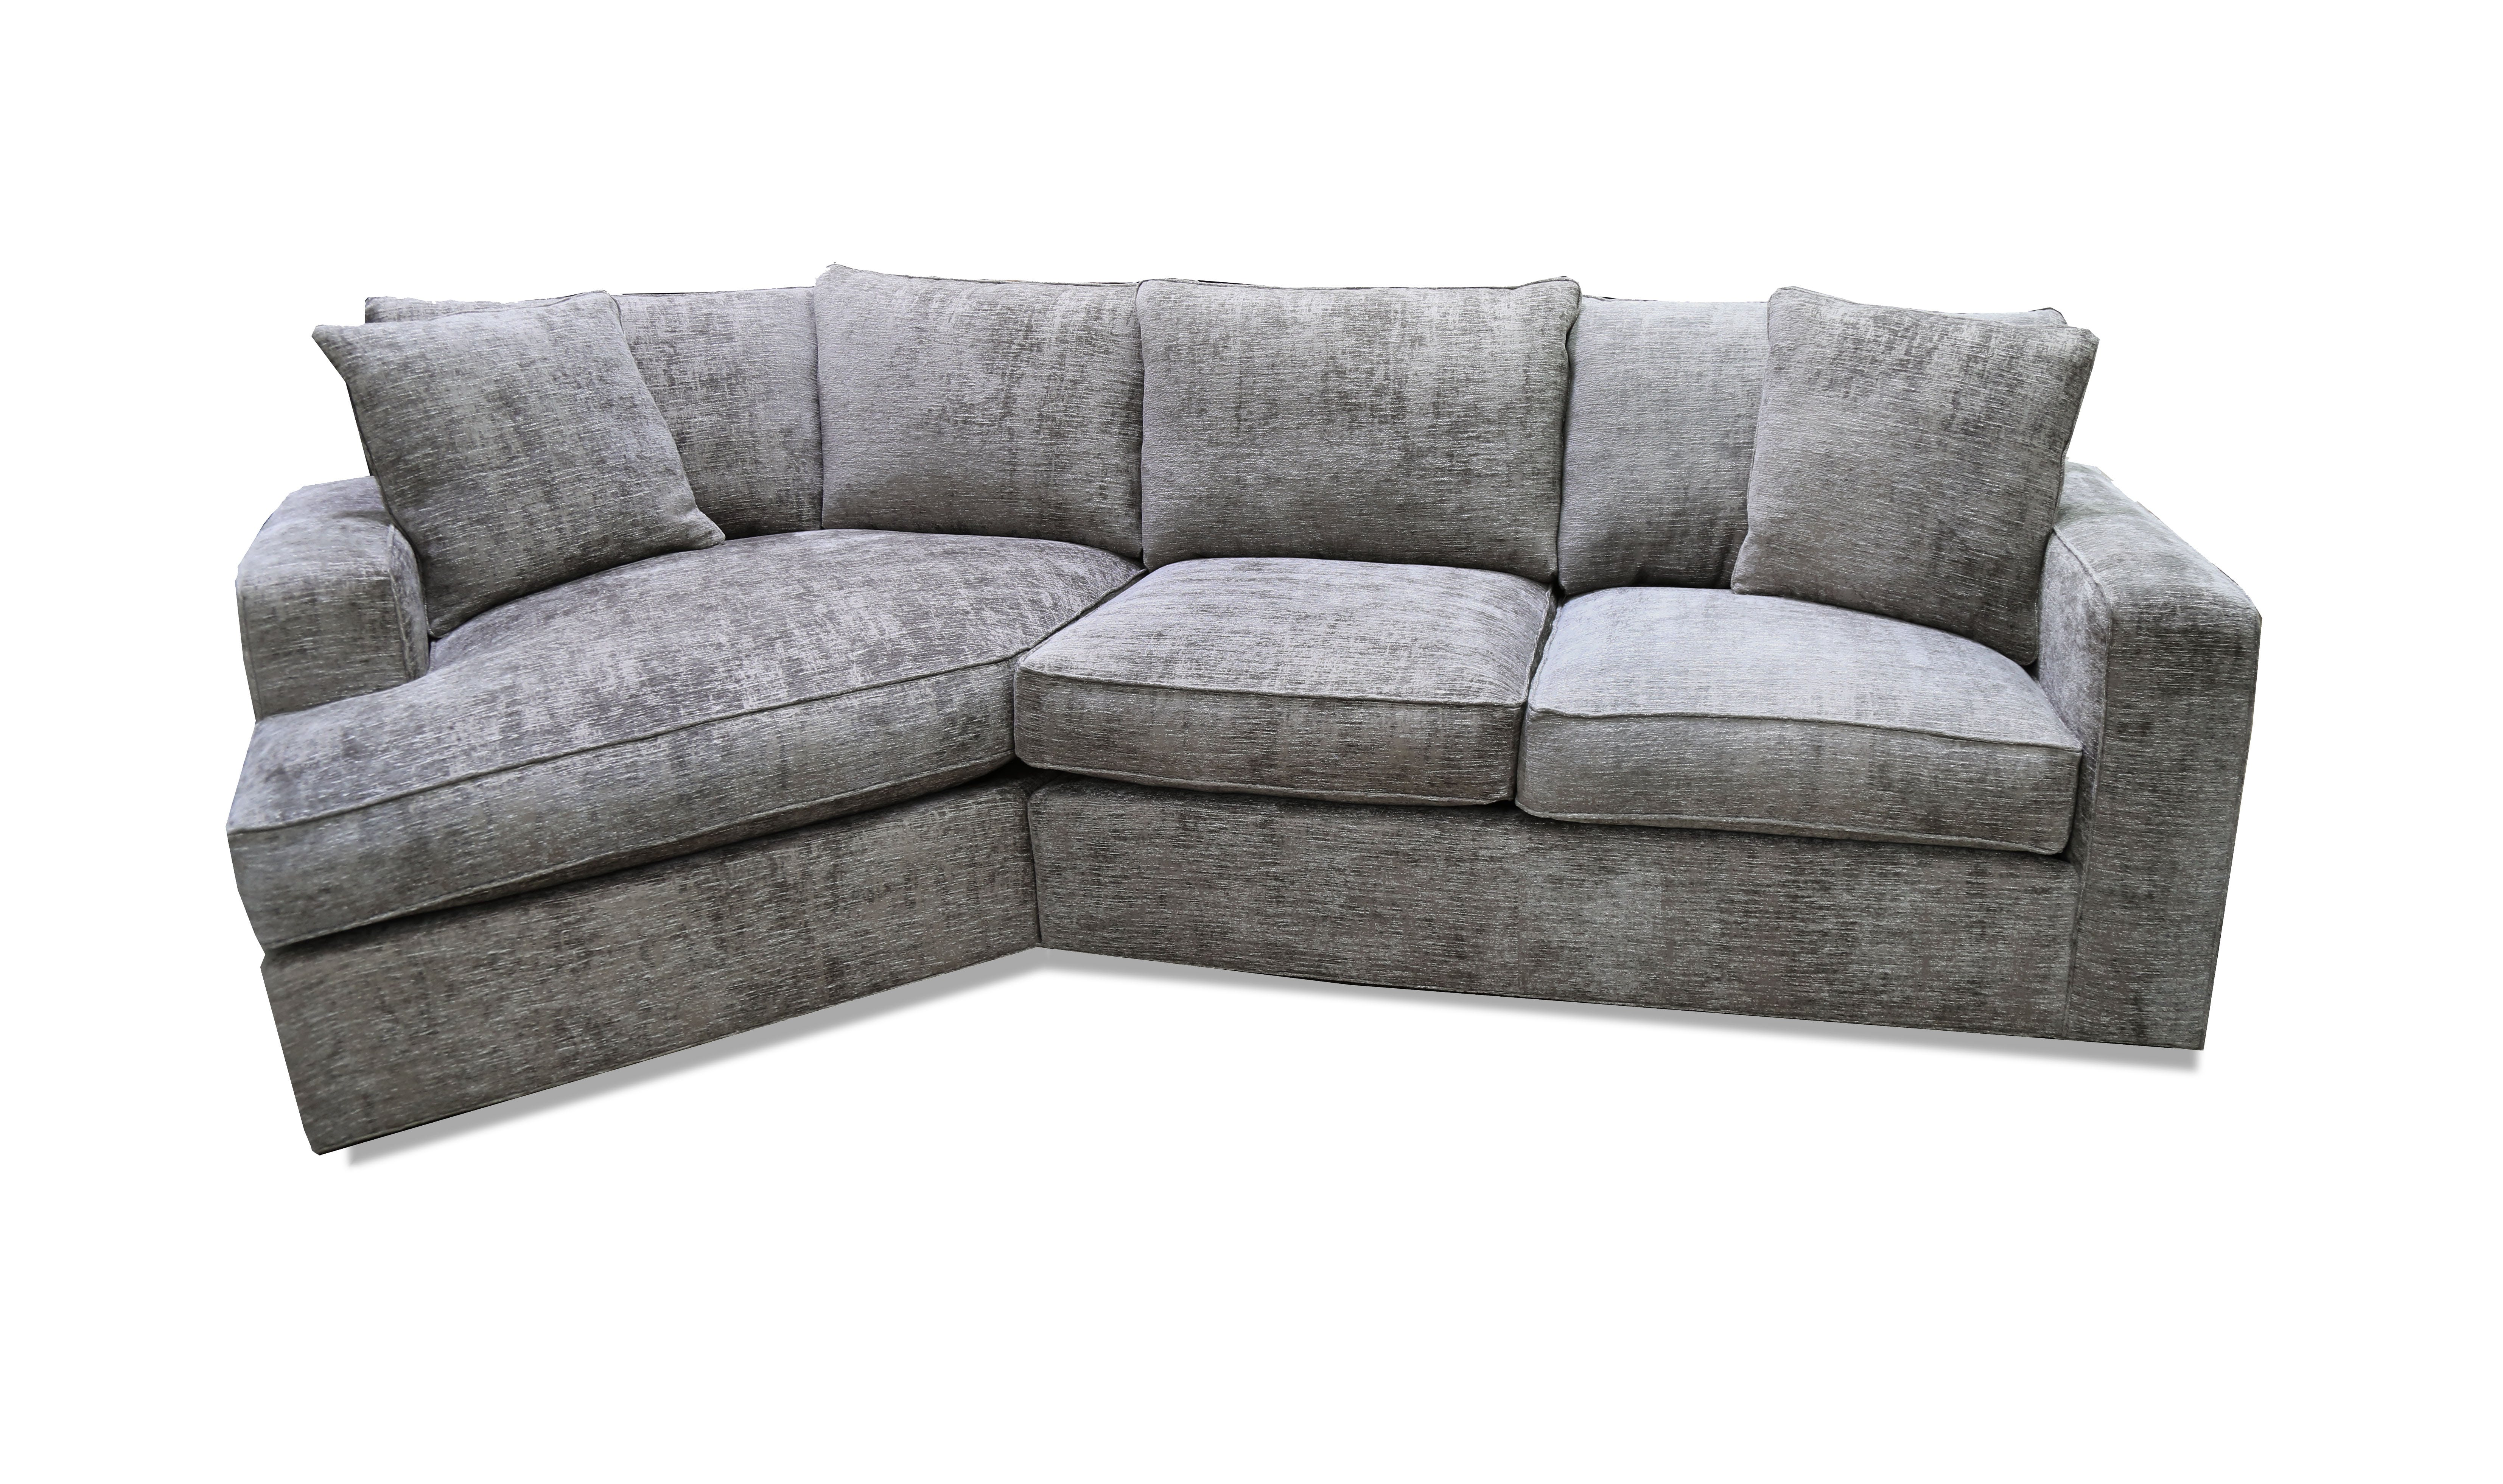 Milford 2 Piece Angled Chaise Sectional